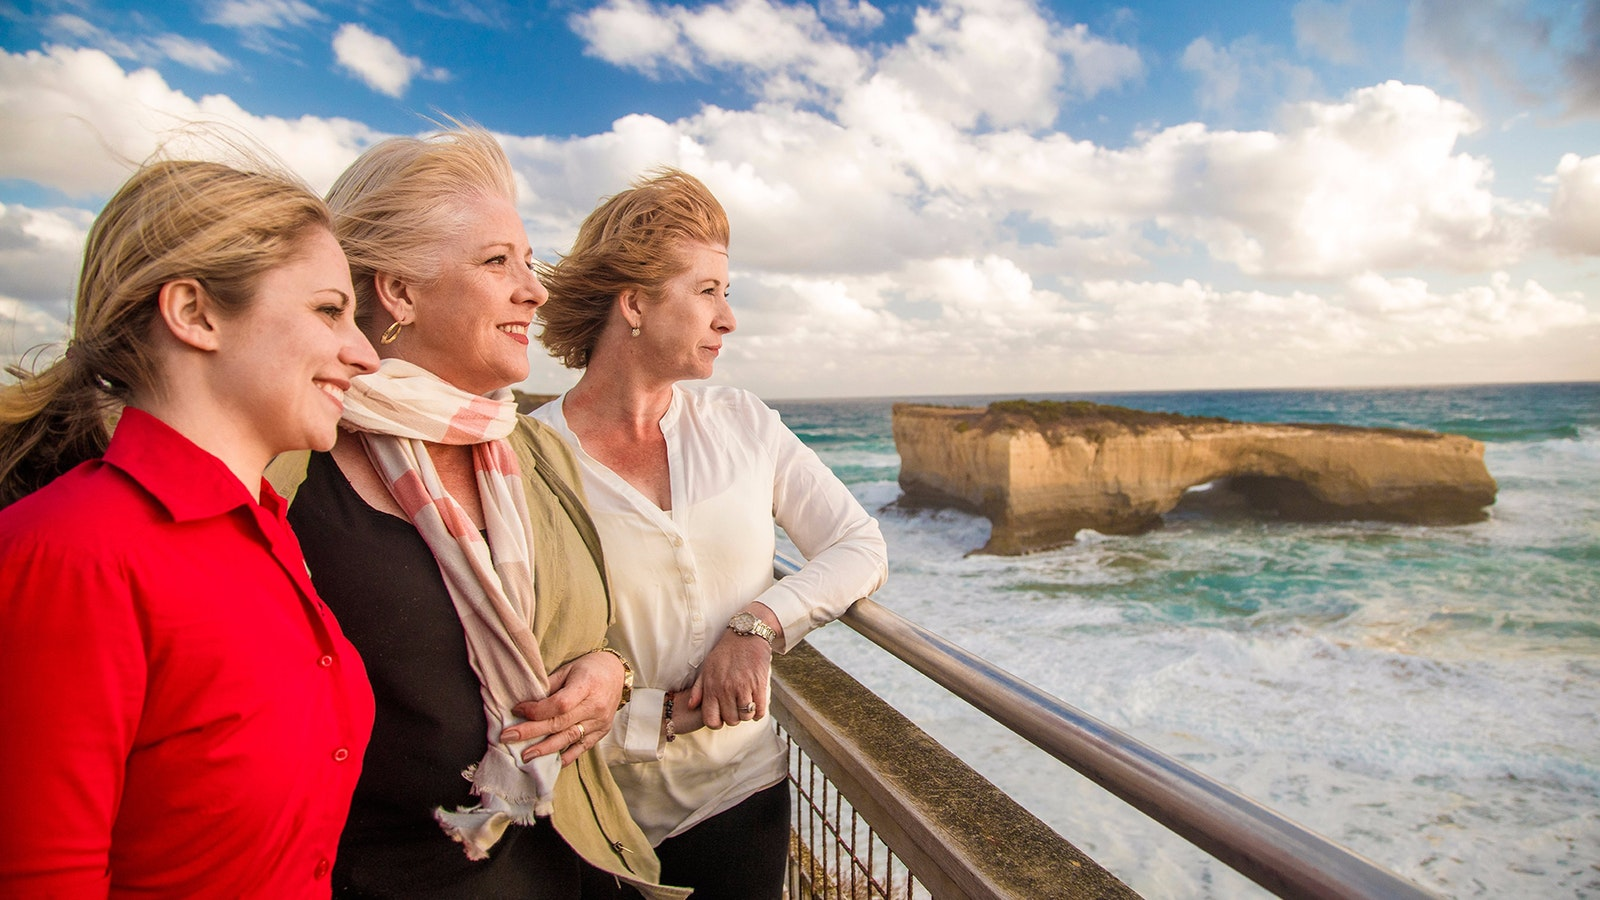 AAT Kings guide and guests on the Great Ocean Road